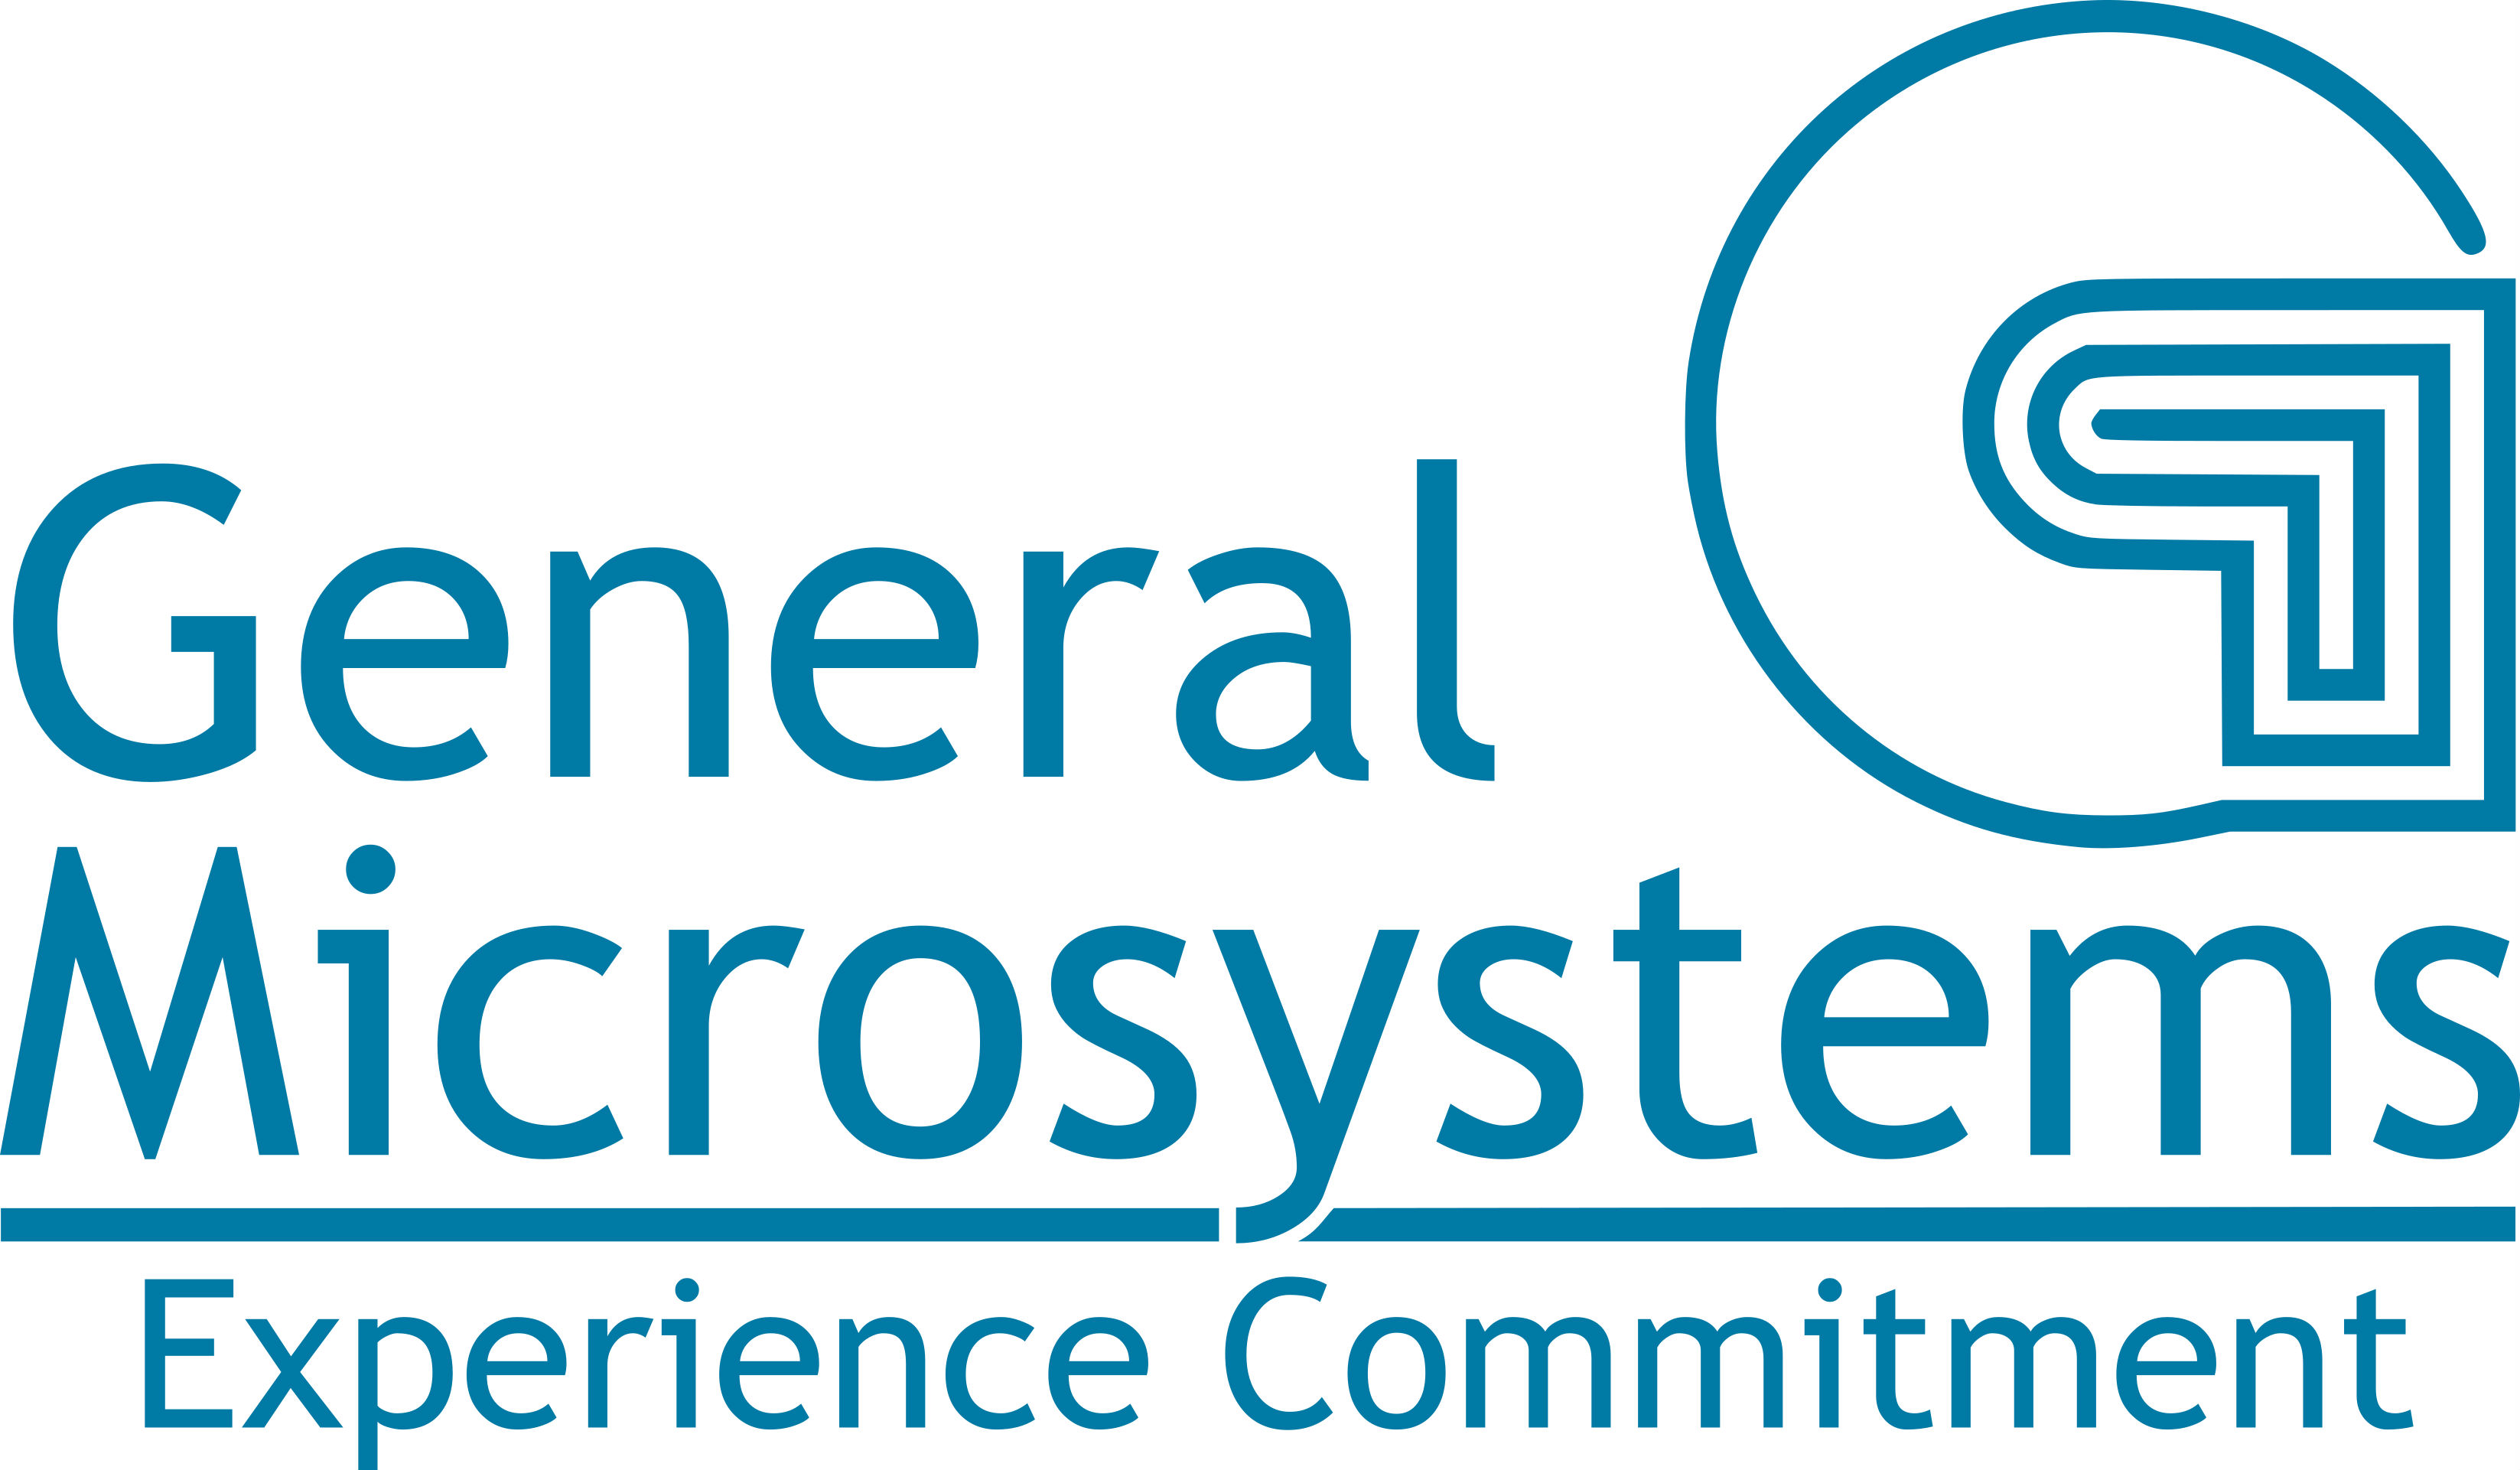 General Microsystems